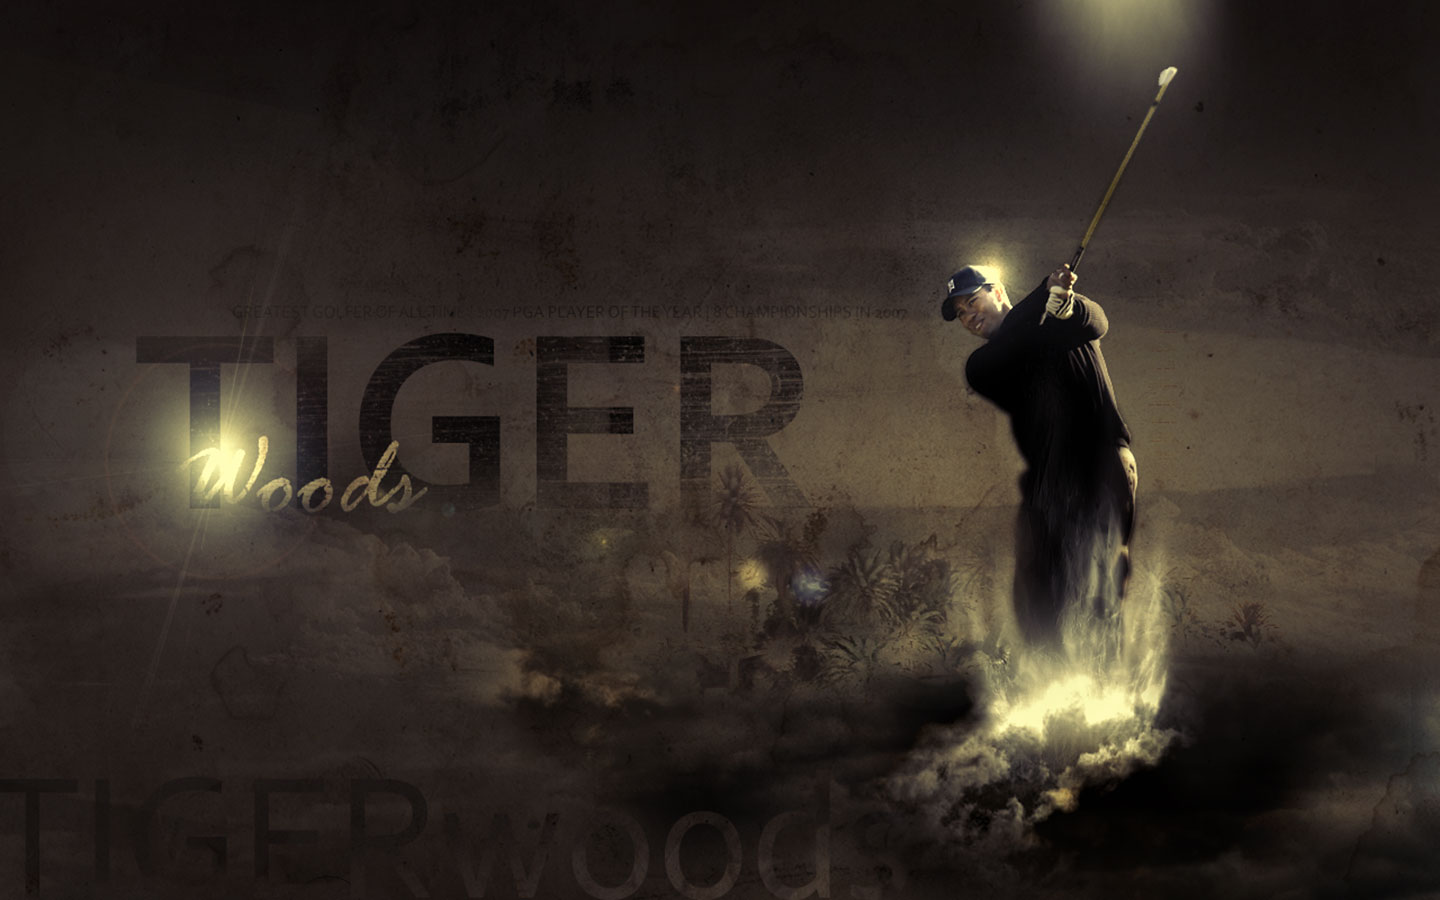 Tiger Woods Wallpaper and Background Image | 1440x900 | ID ...